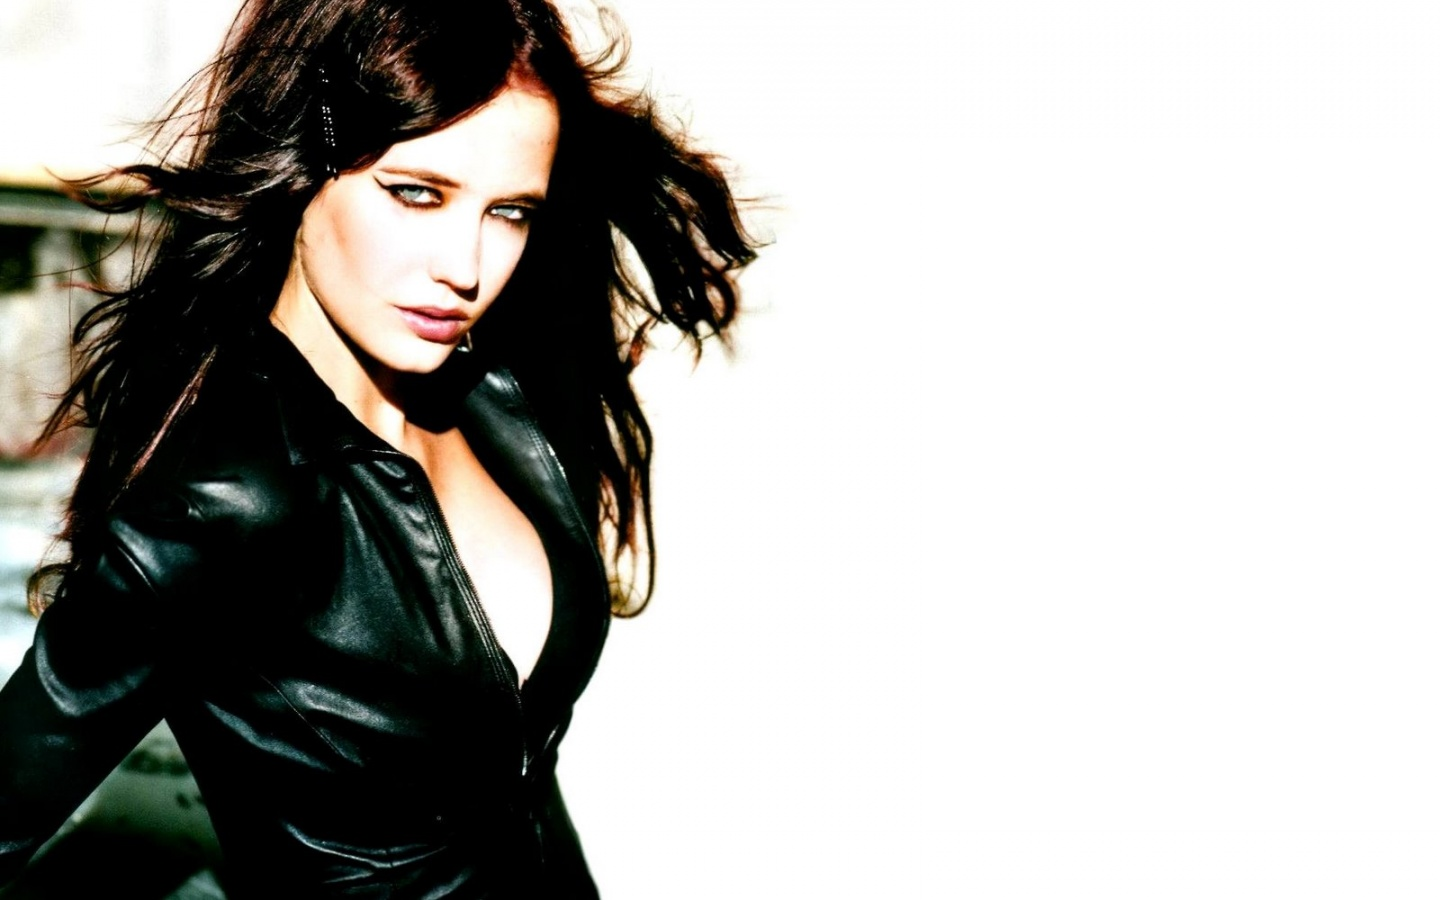 eva green wallpapers | wallpapers in high definition hd for